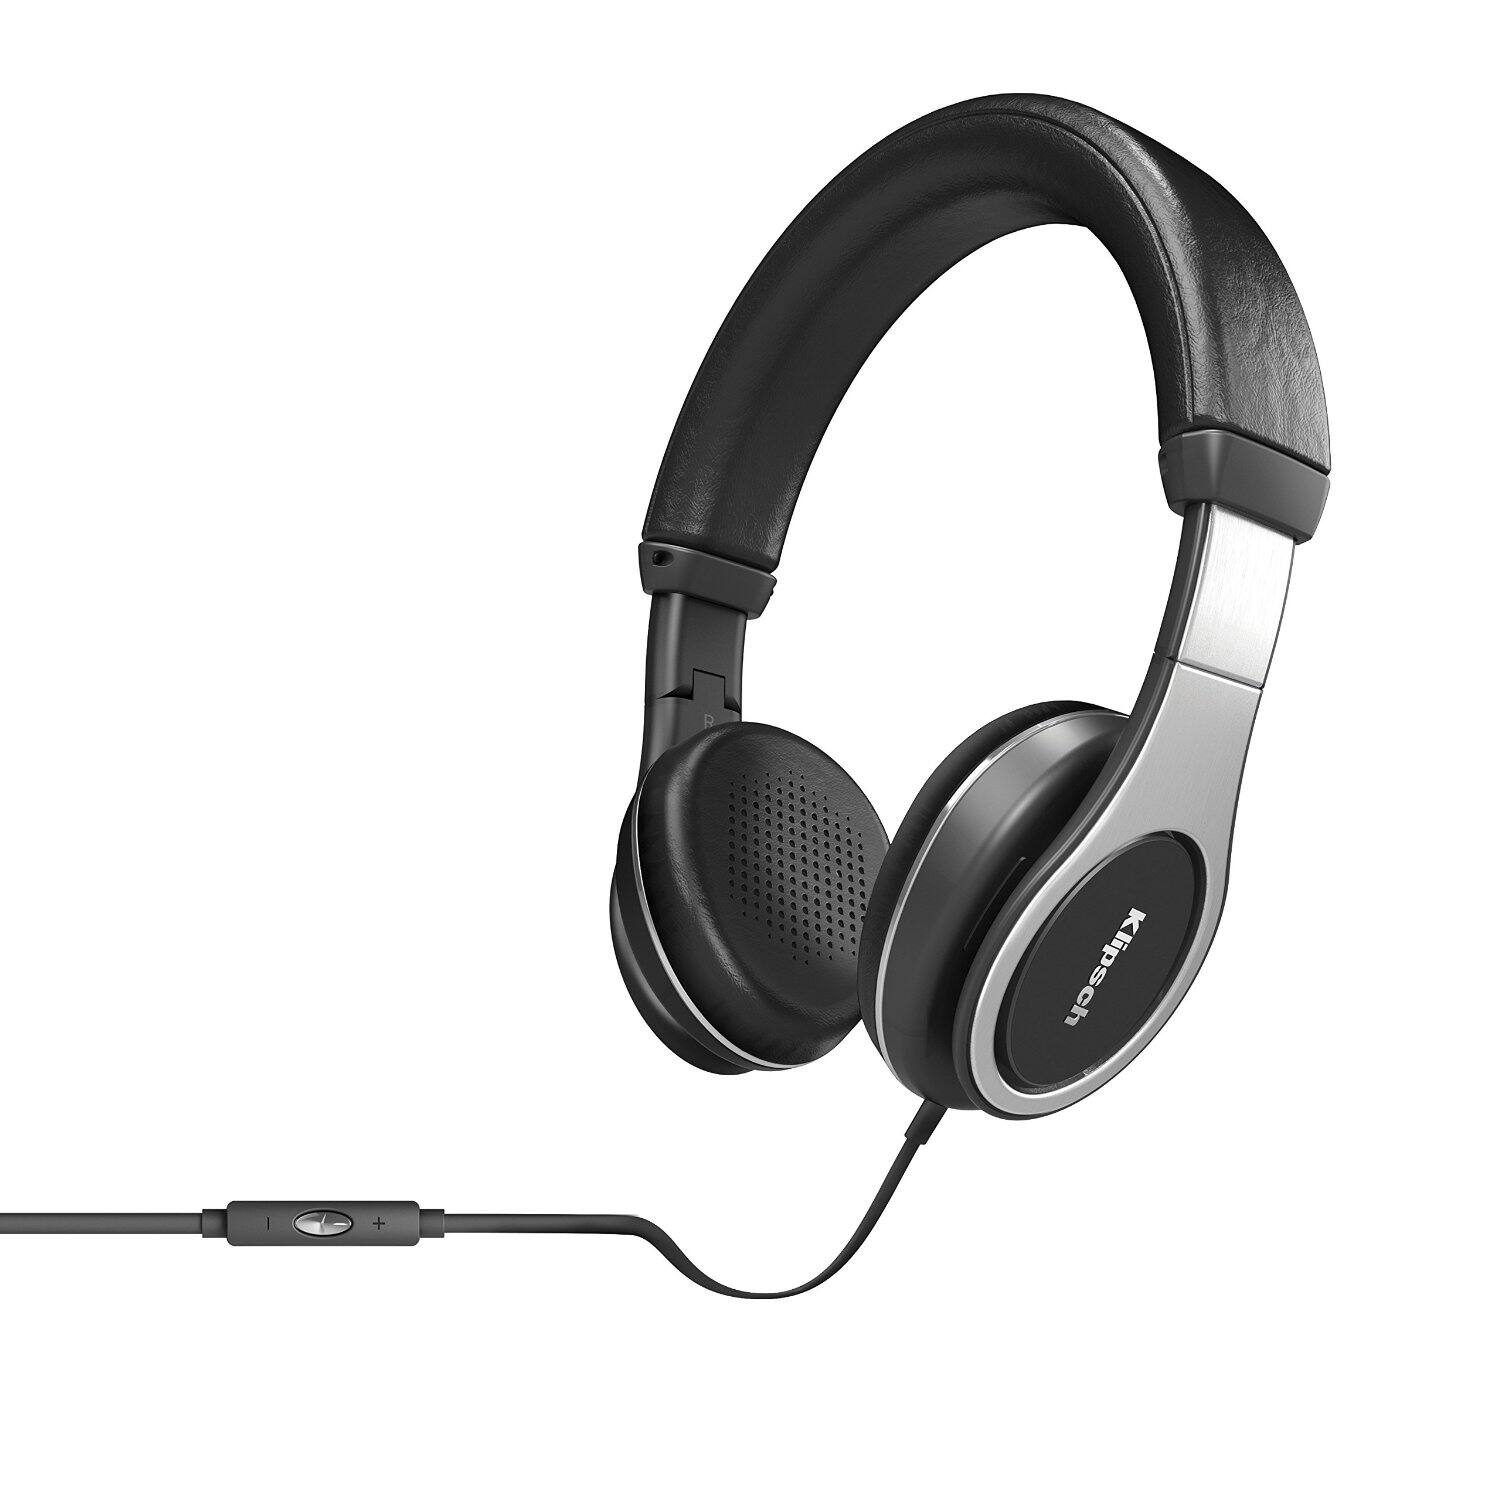 Klipsch Reference On-Ear Premium Headphones for $49.99 AR, JBL Synchros S300 On-Ear Headphones w/ Android Remote & Mic for $34.99 AR + Free Shipping @ Newegg.com